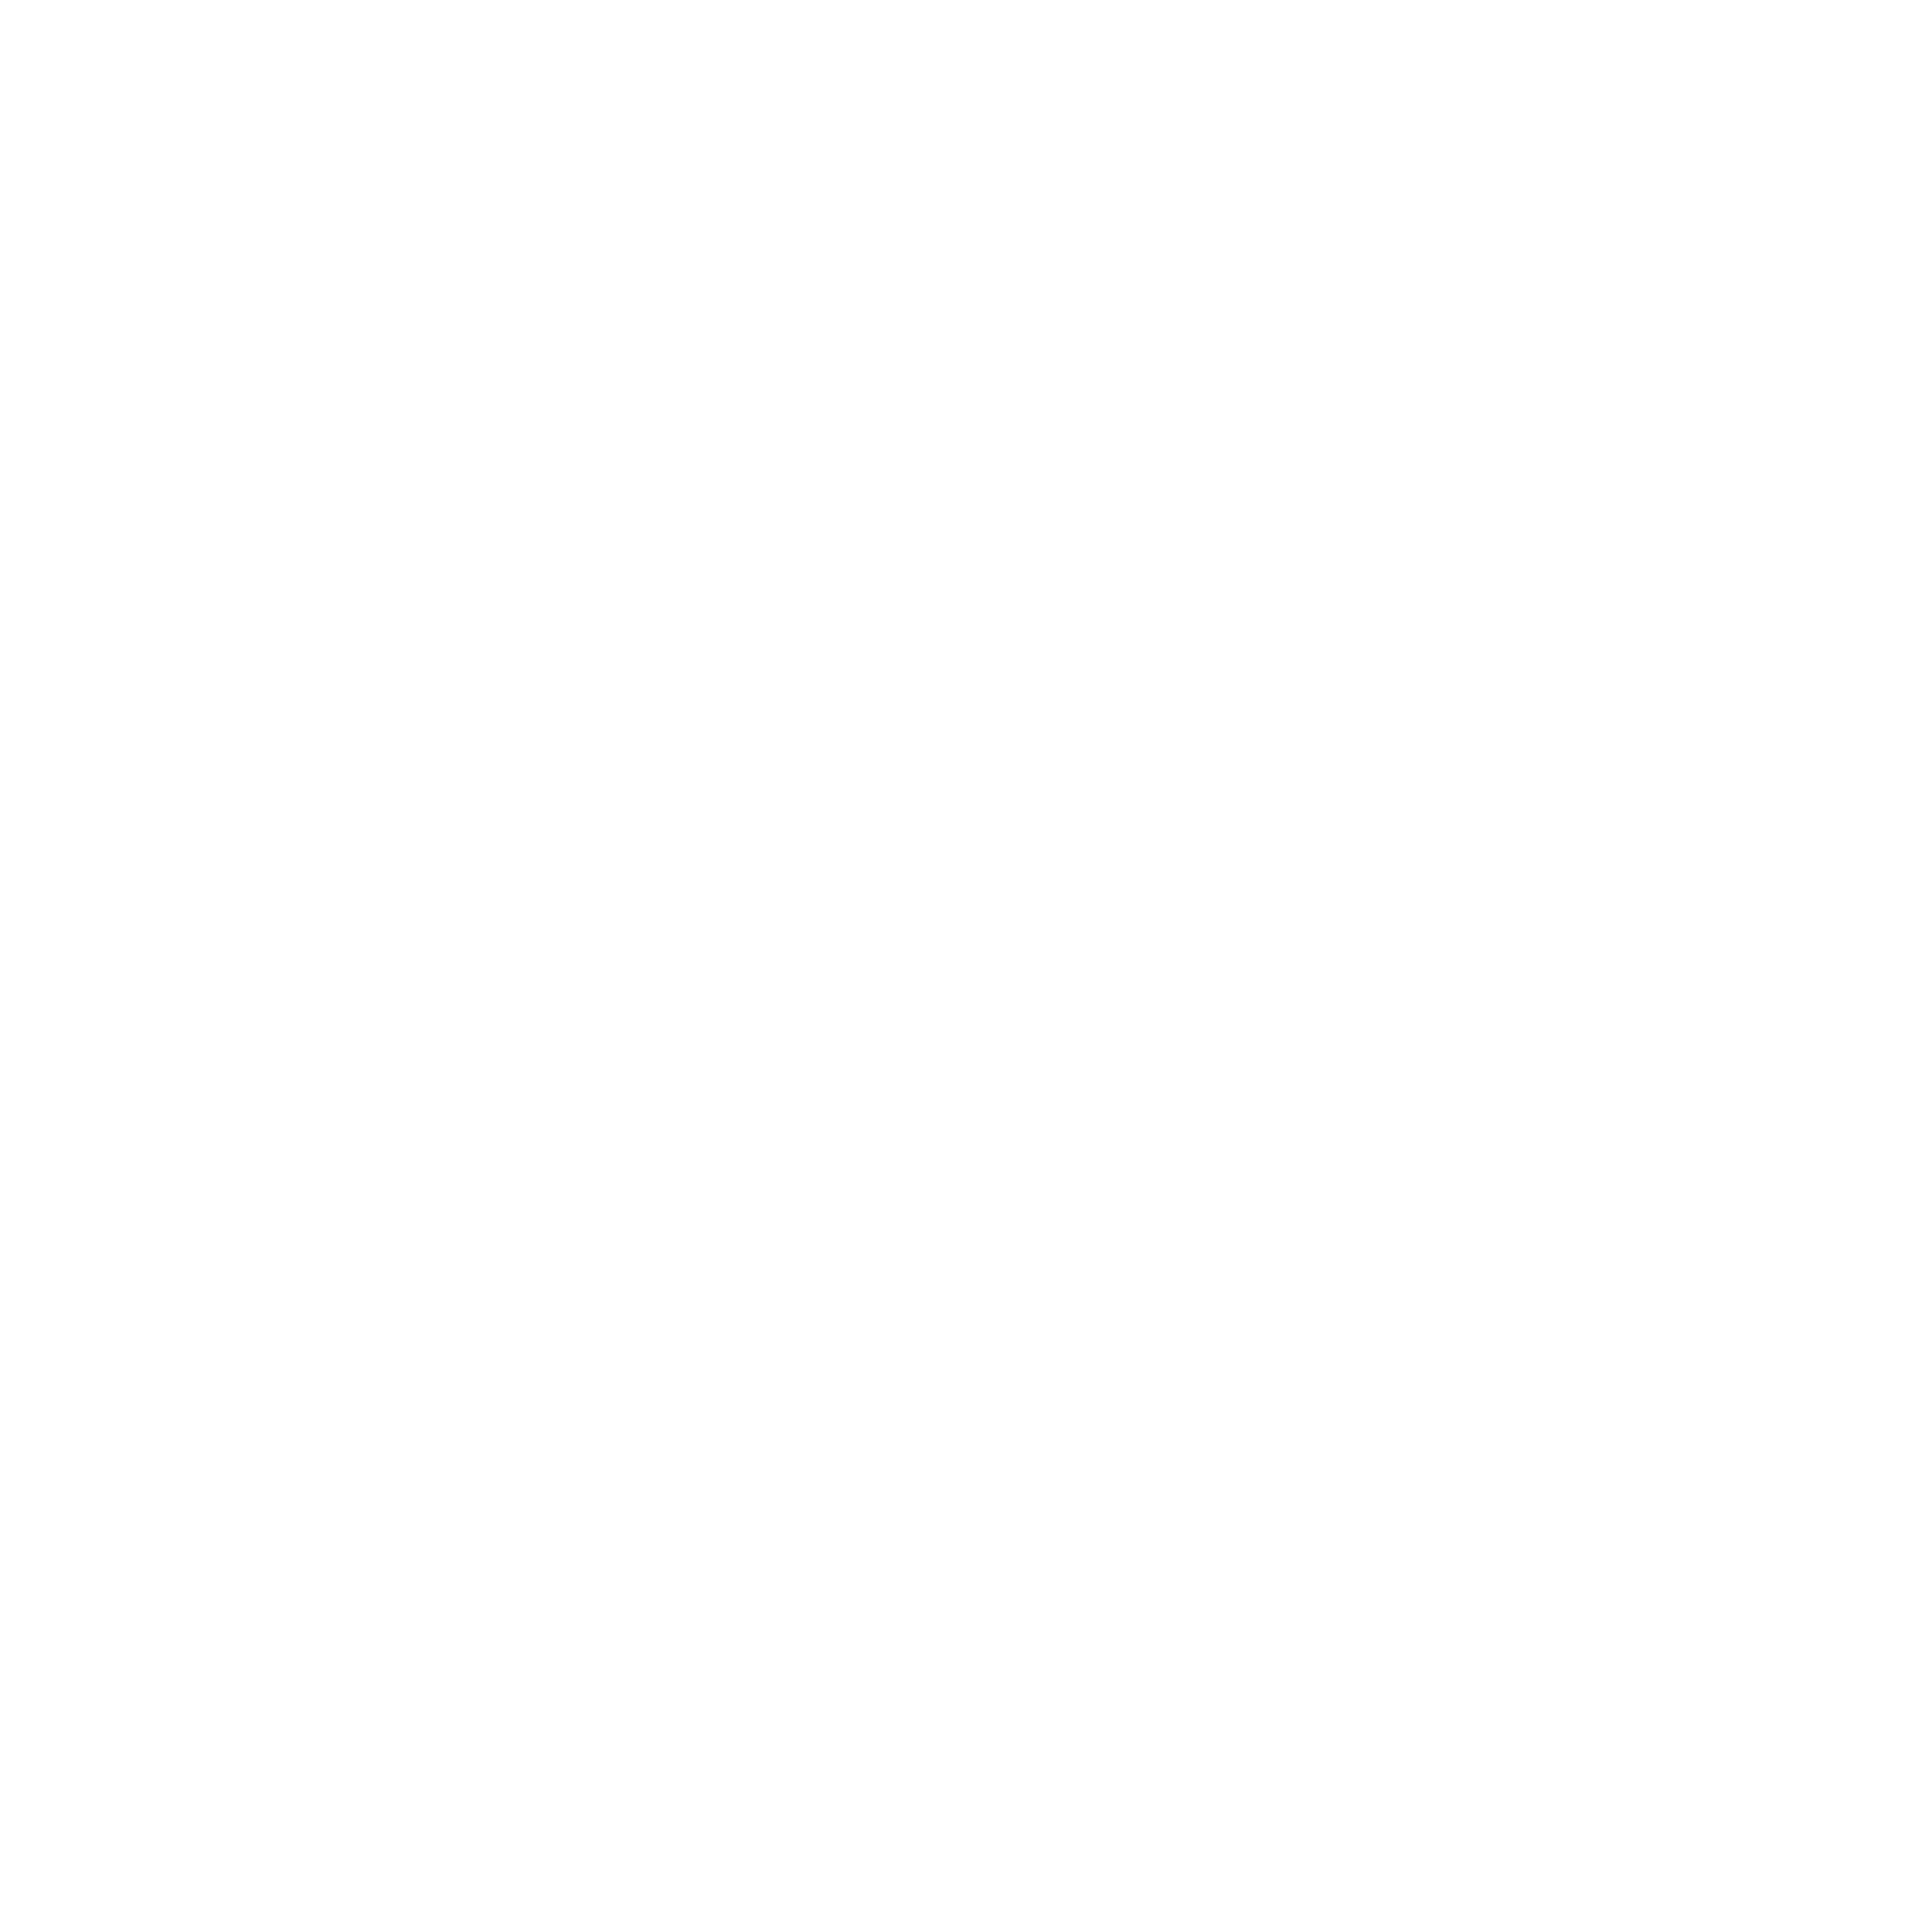 OPEC Logo - OPEC Logo PNG Transparent & SVG Vector - Freebie Supply